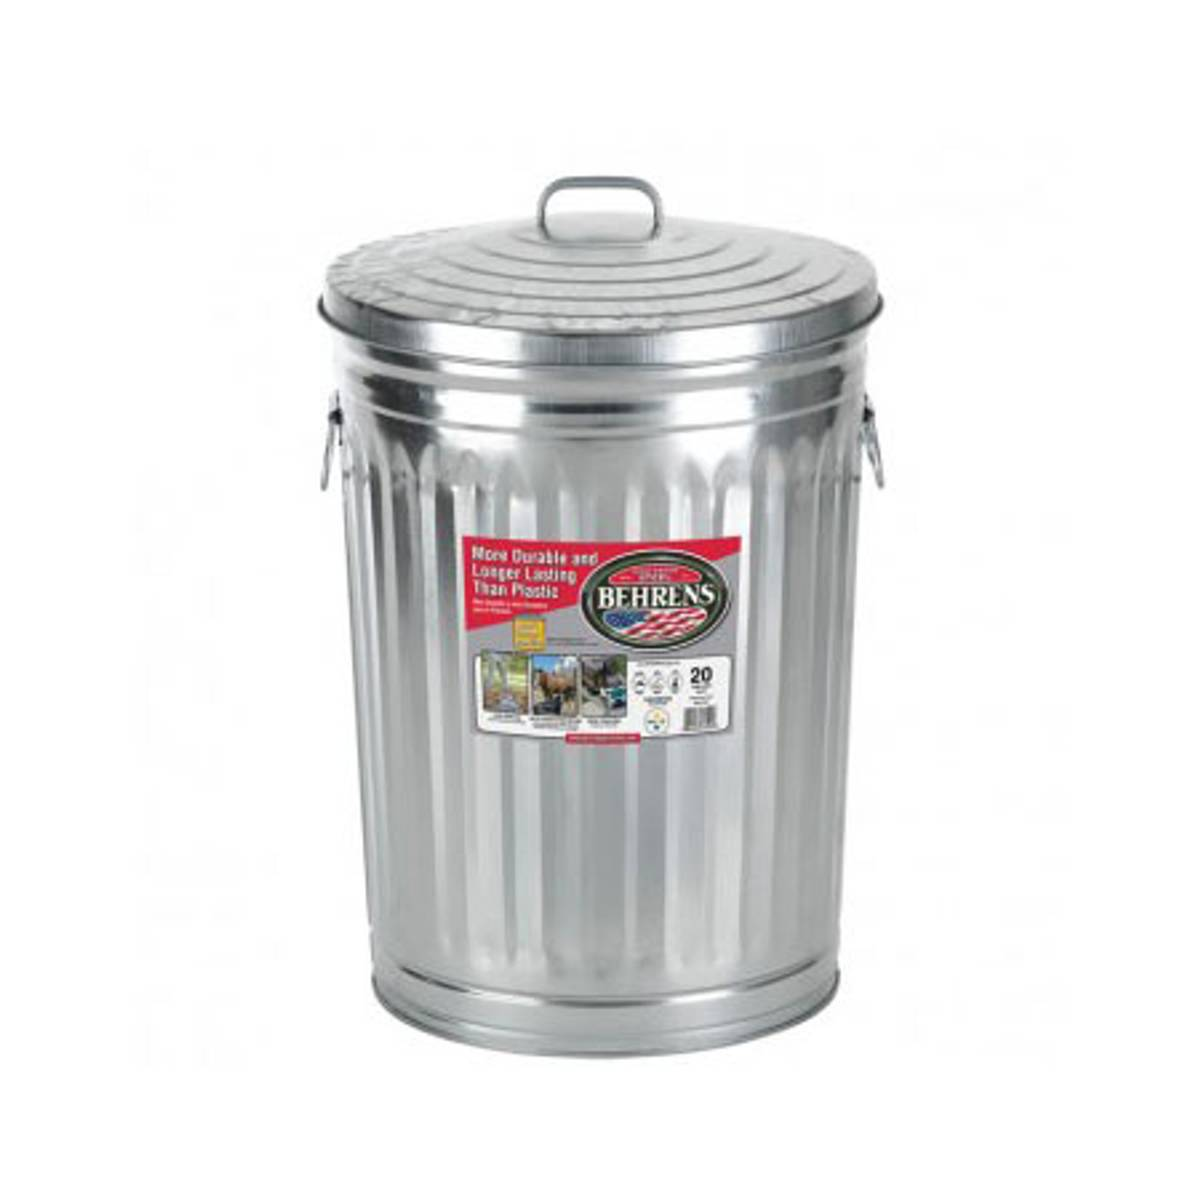 Shop Garbage Cans, Trash Cans and Waste Baskets